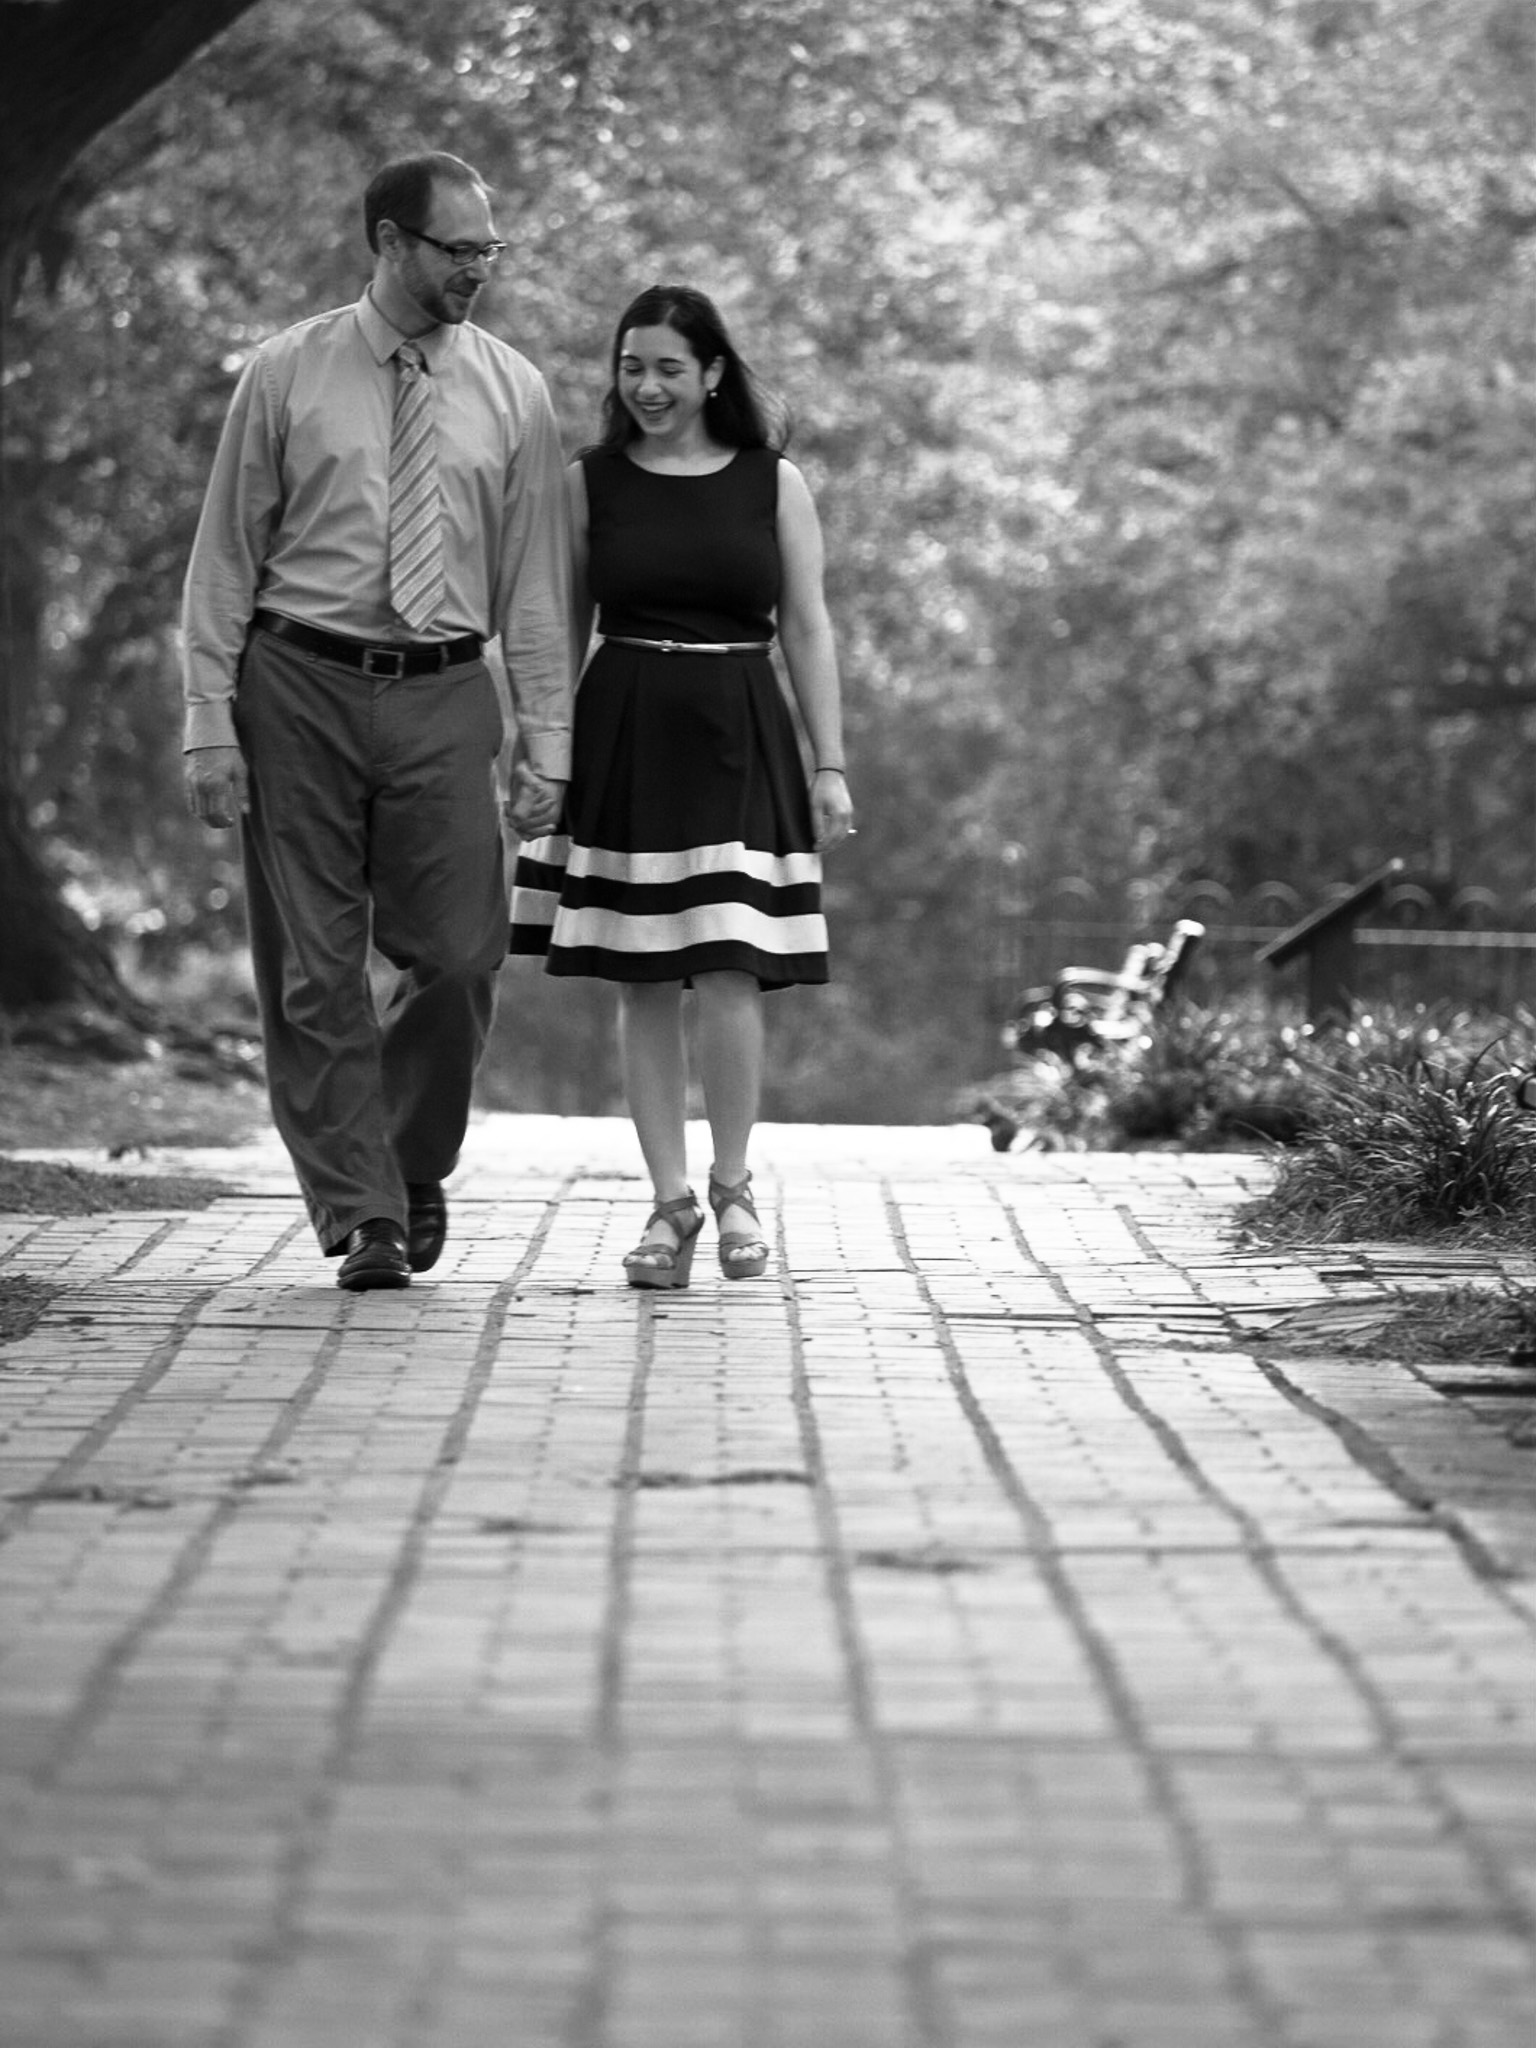 Engagement, Photography, Photographer, Columbia SC, Horeshoe, USC, College Campus, Couple, B&W, Black and White